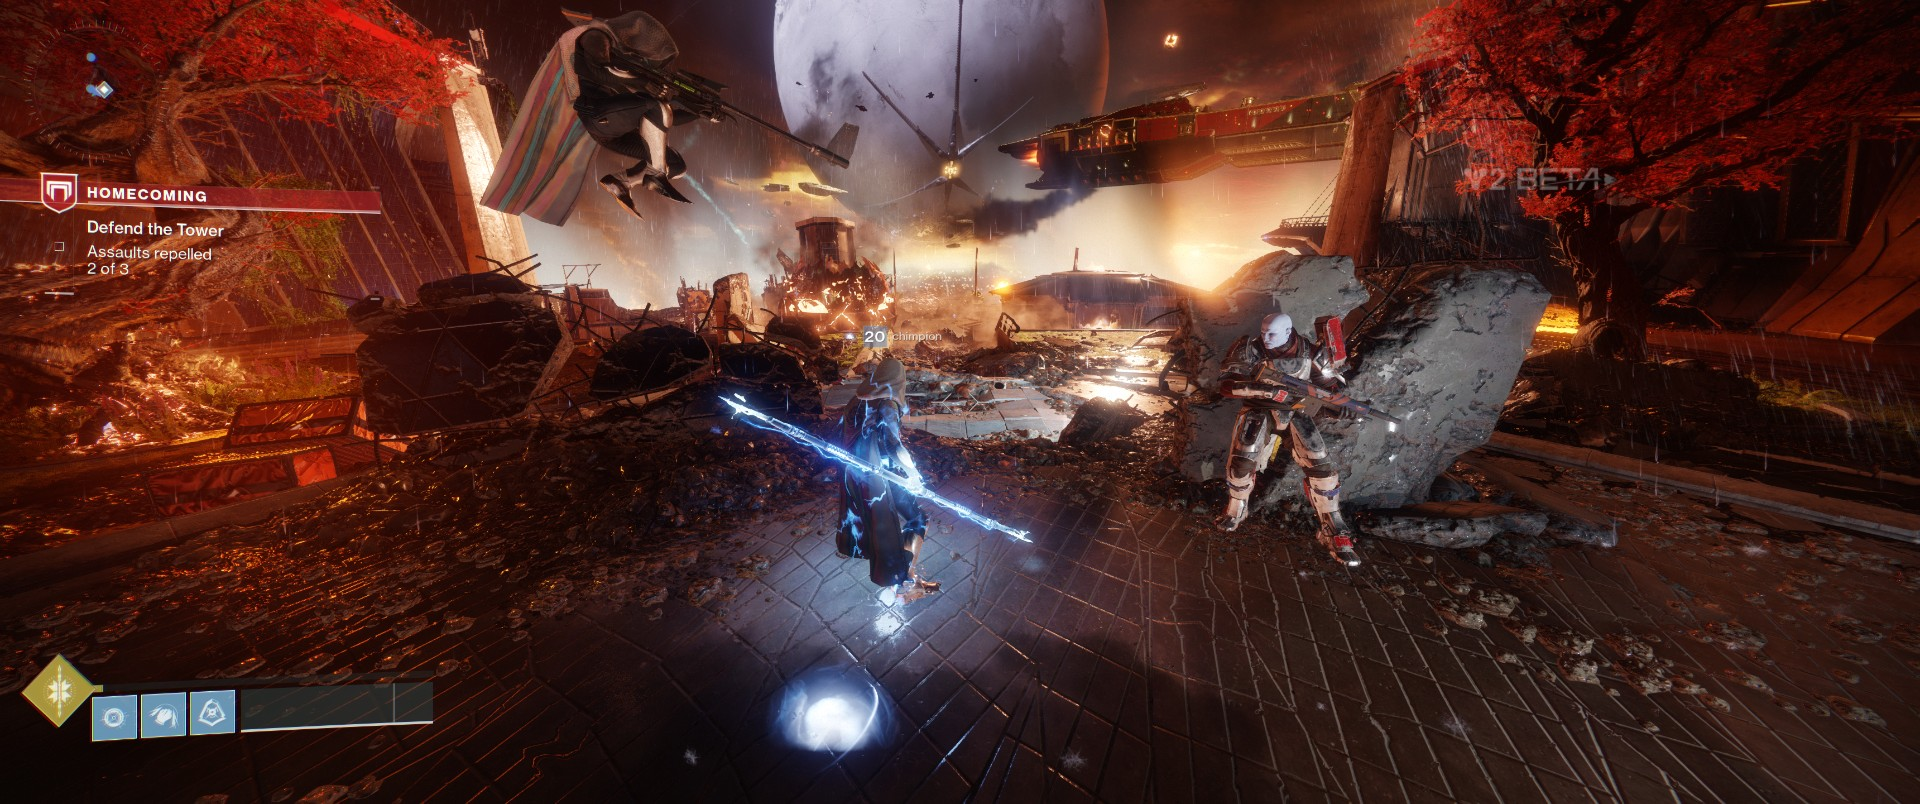 Destiny PC Beta Review - Gaming For The Weekend